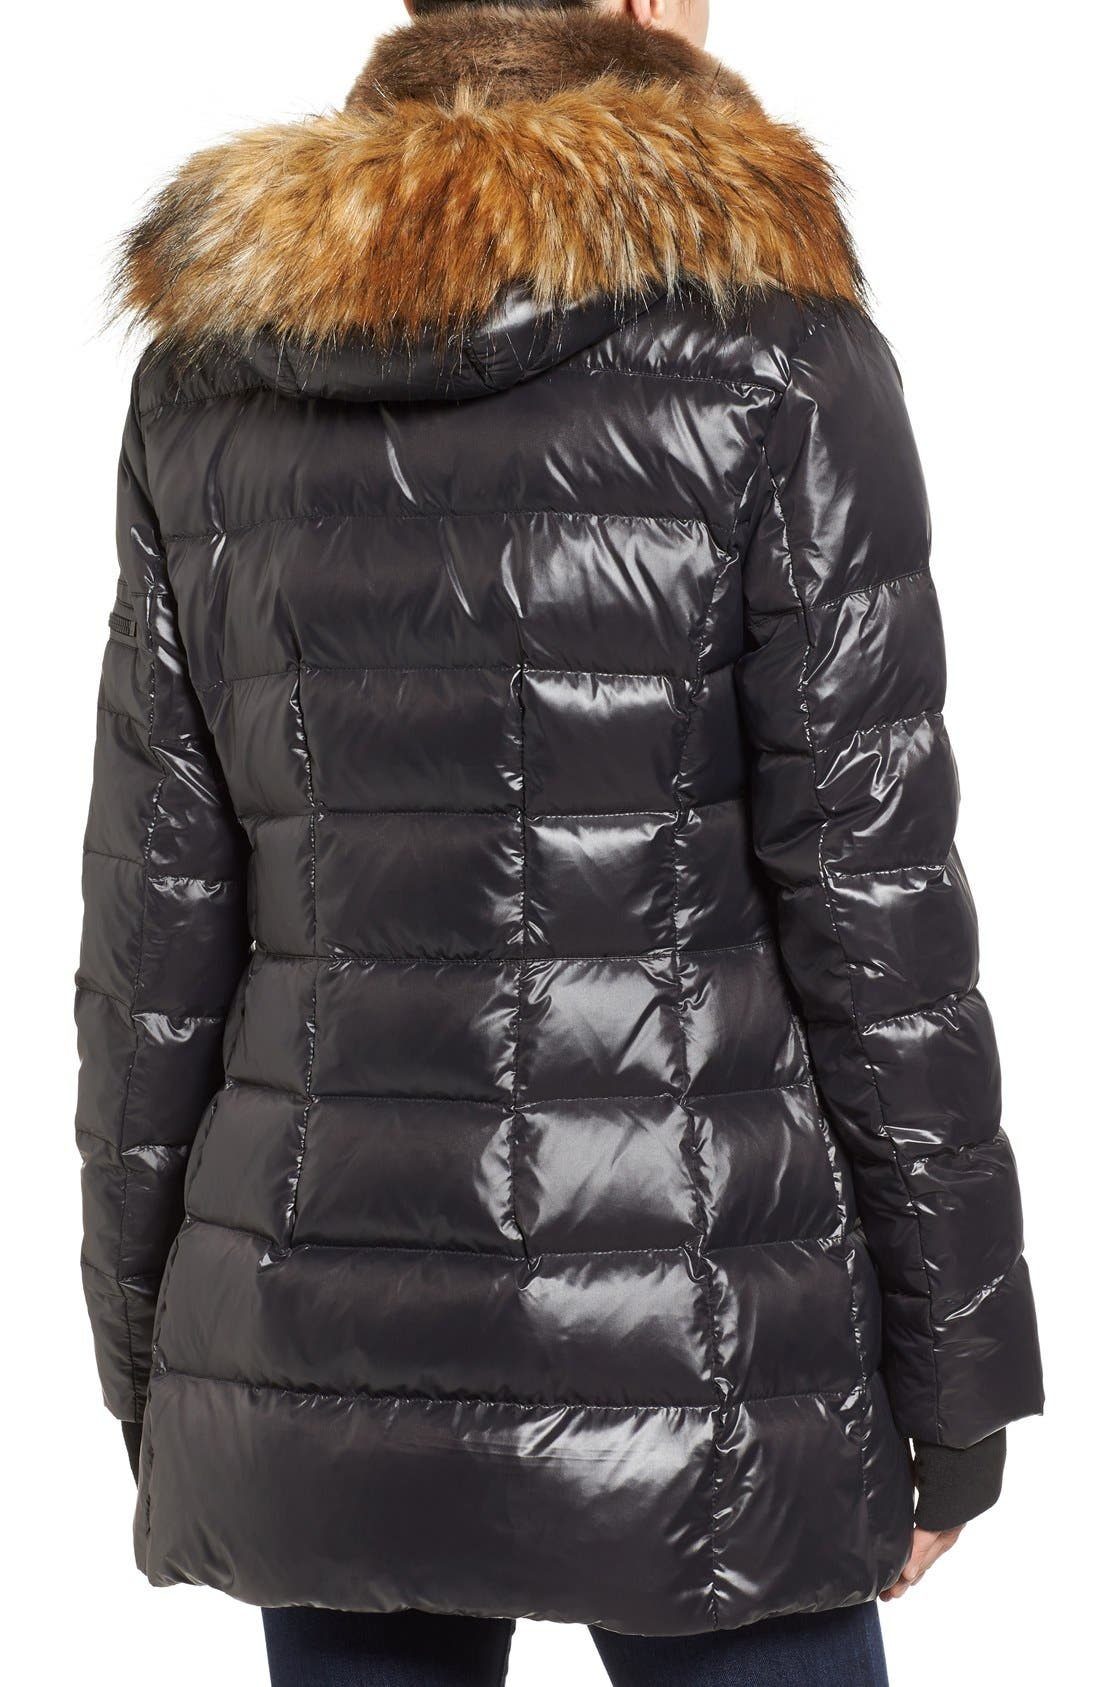 'Chelsea' Gloss Down Jacket with Removable Hood and Faux Fur Trim,                             Alternate thumbnail 2, color,                             Jet